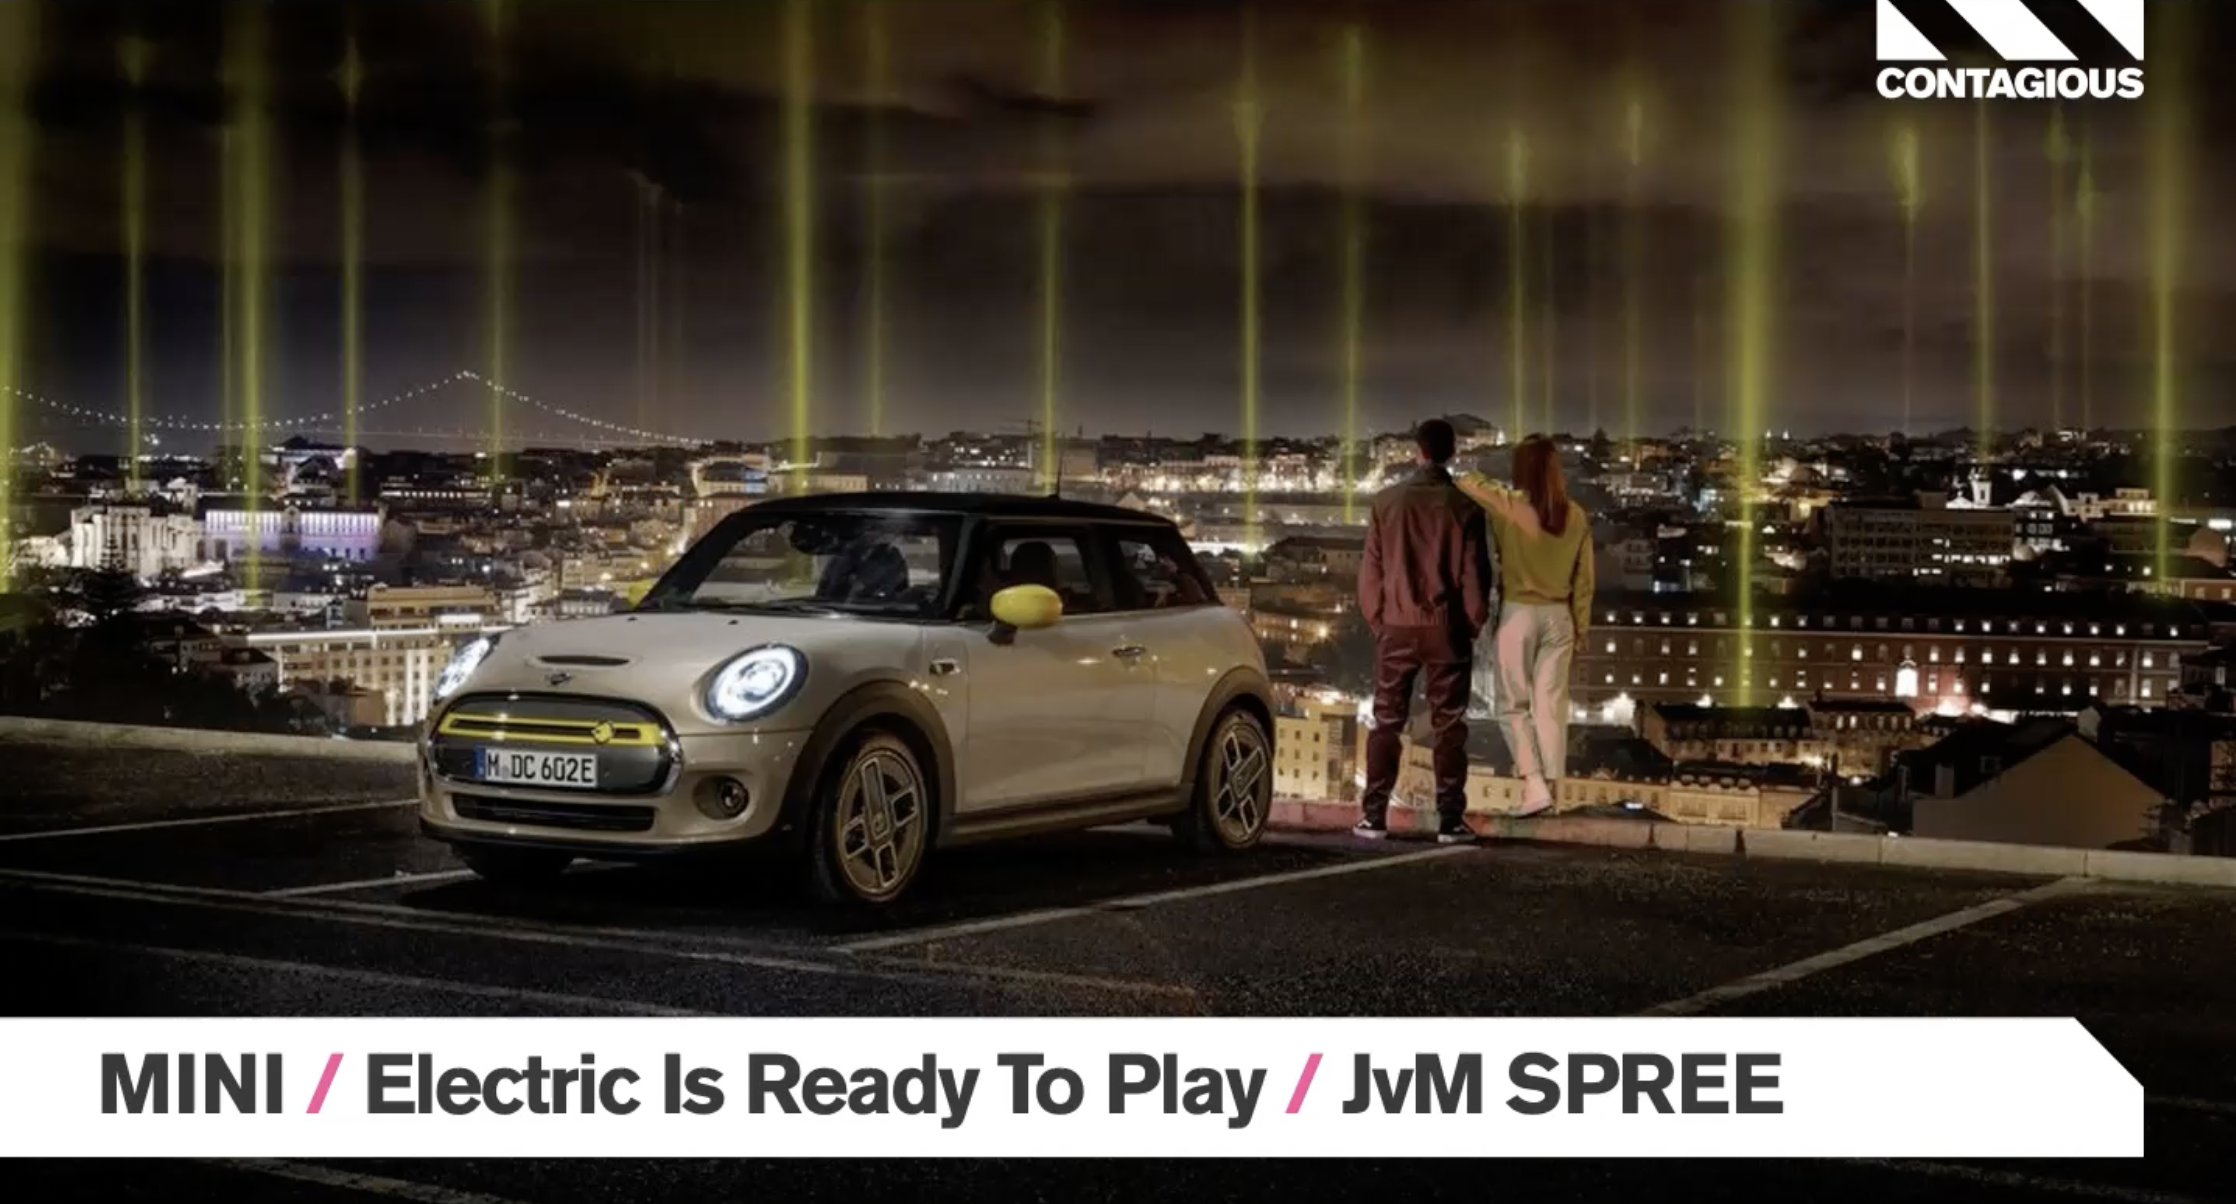 Audiense blog - MINI | Electric Is Ready To Play